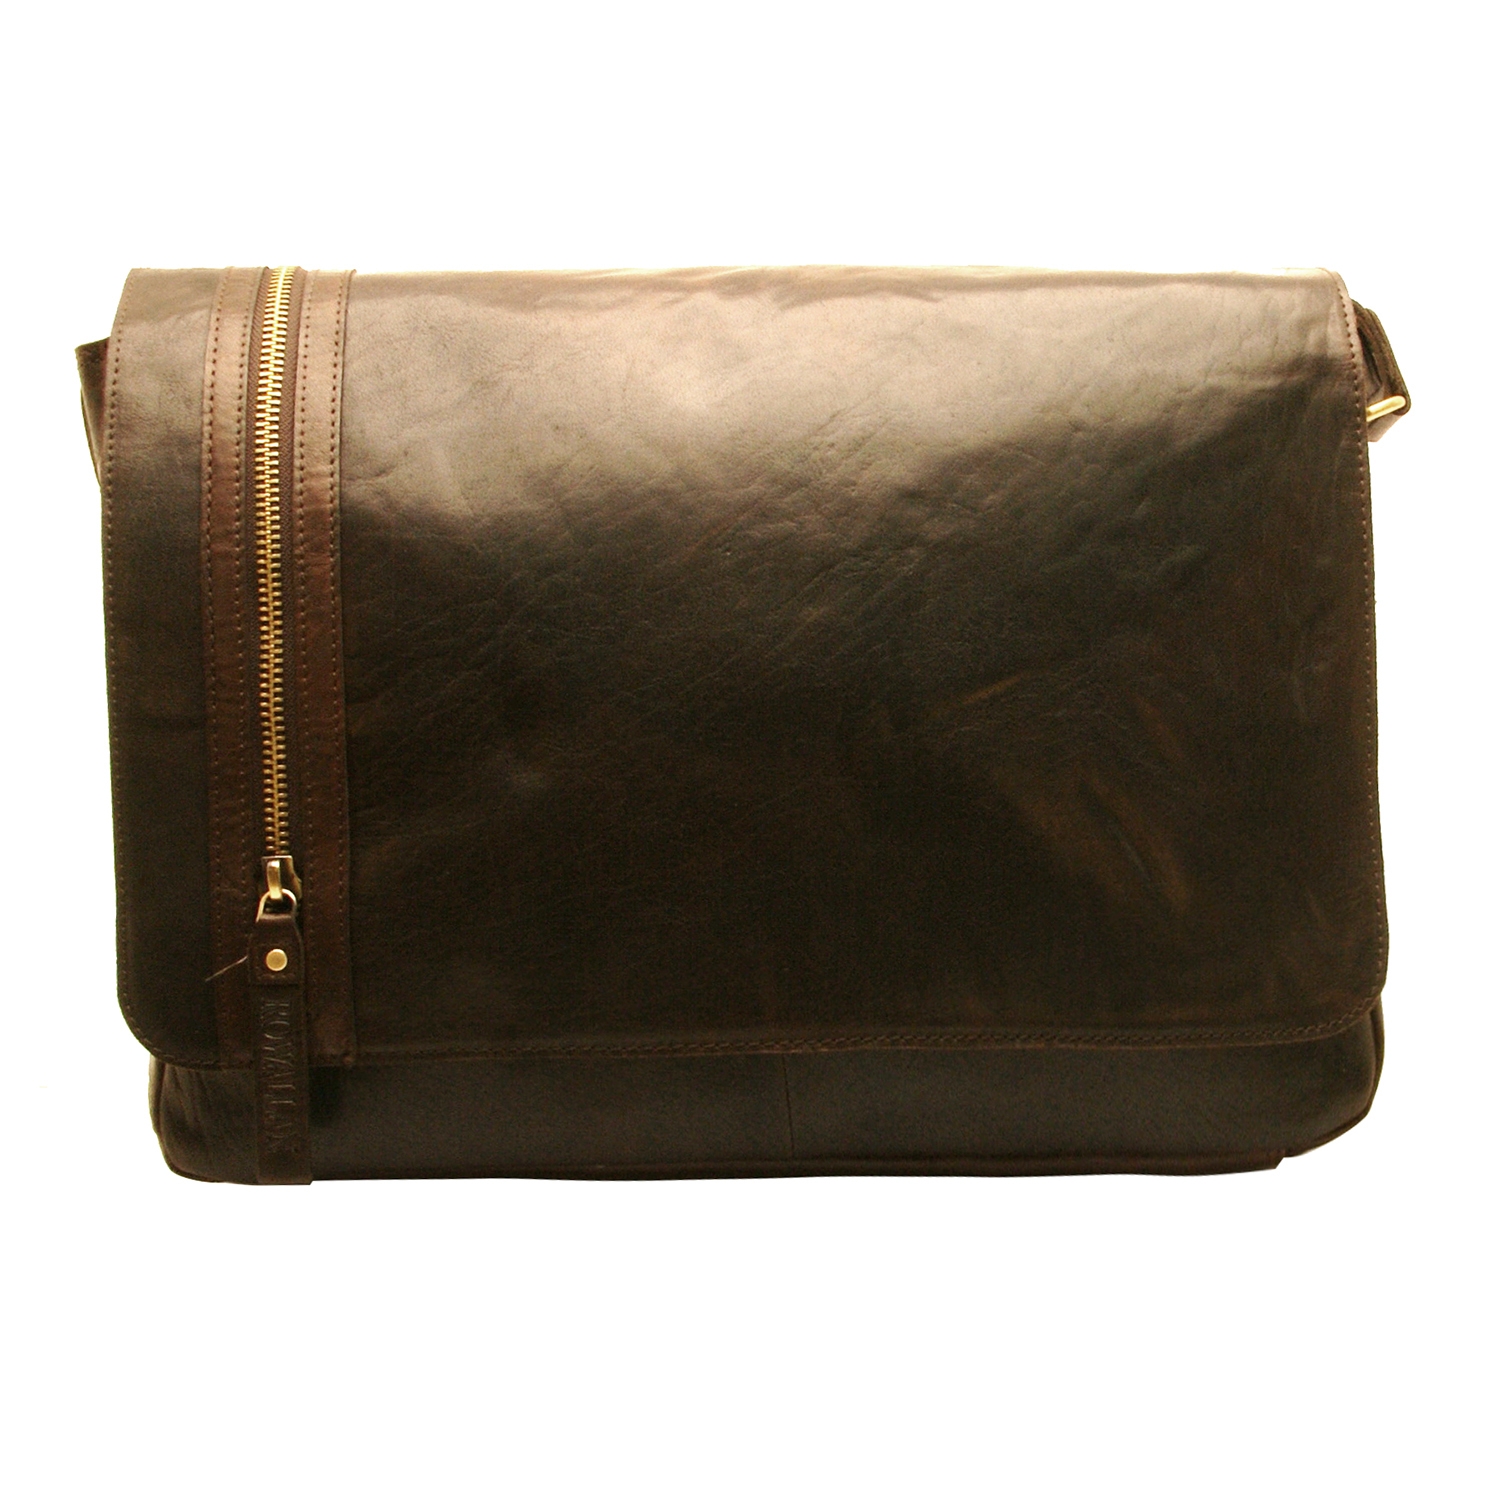 Rowallan – Large Brown Conquest Messenger Laptop Bag in Buffalo Leather